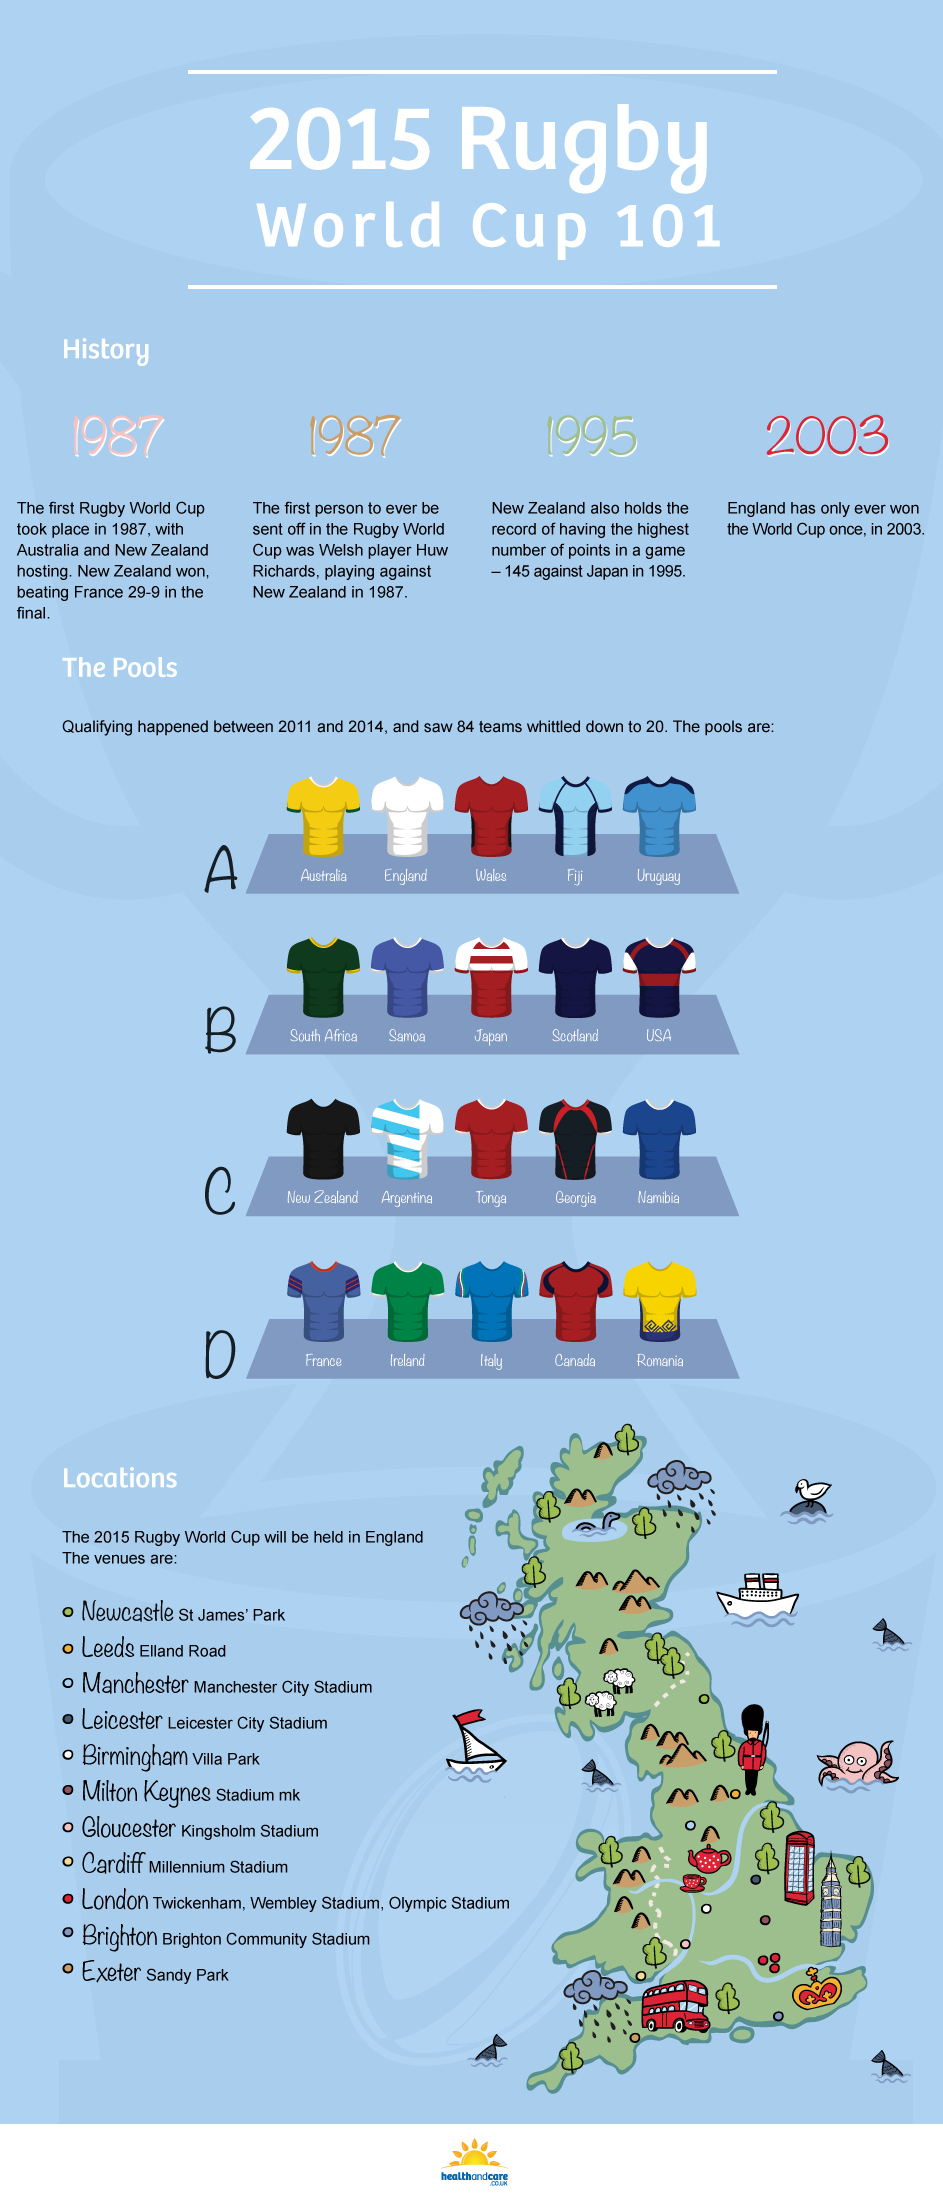 Find Out More About the 2015 Rugby World Cup